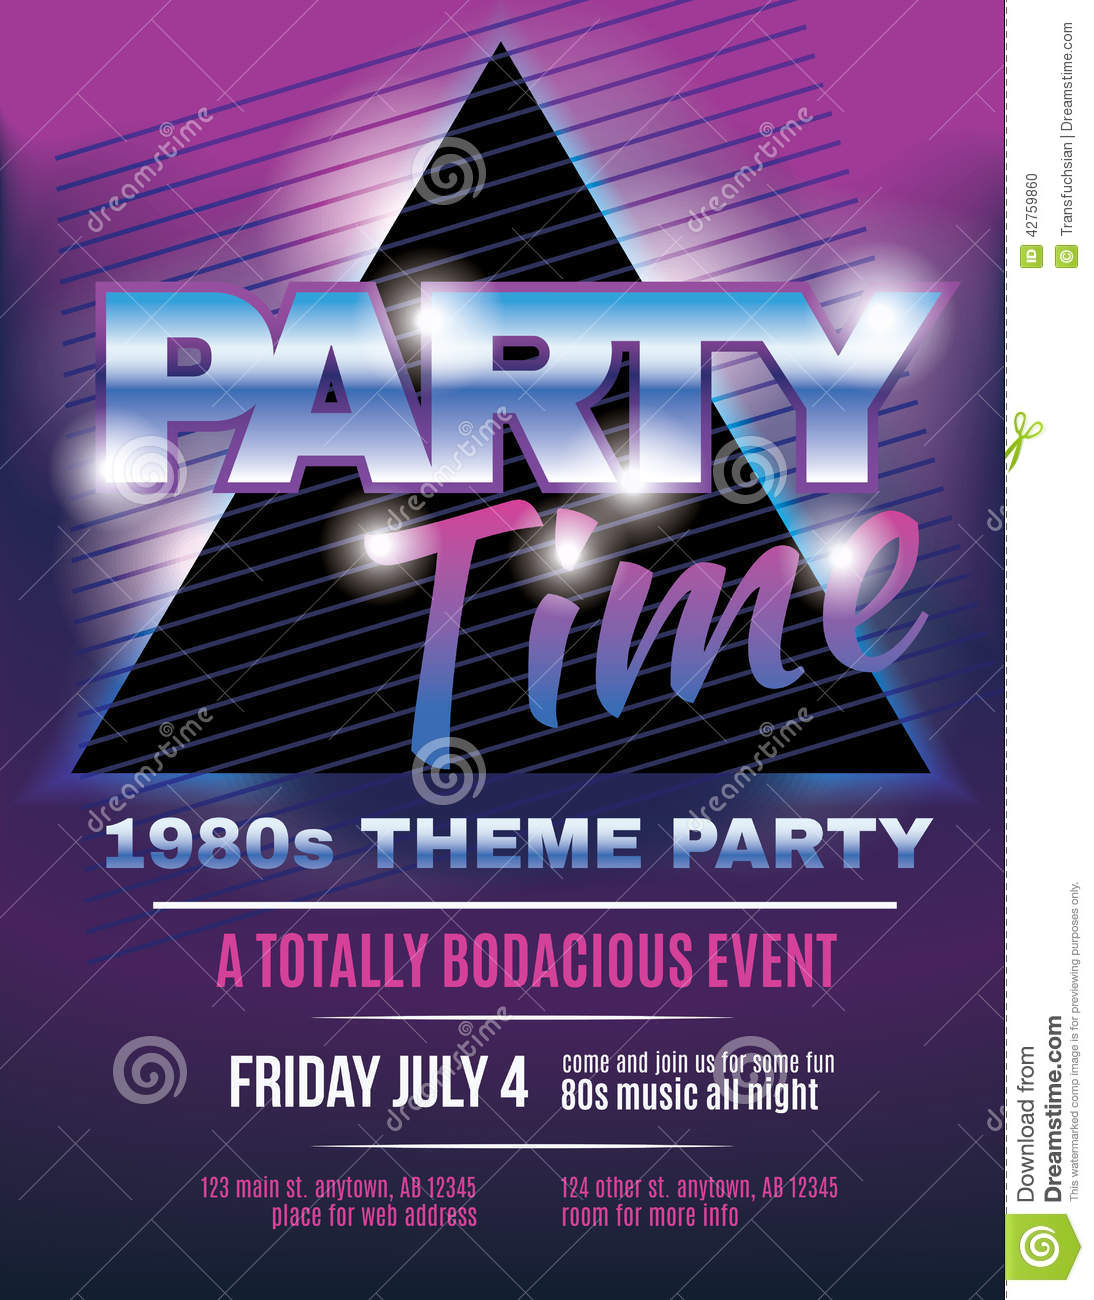 Funky 1980s Theme Party Flyer Template Invitation Stock Vector